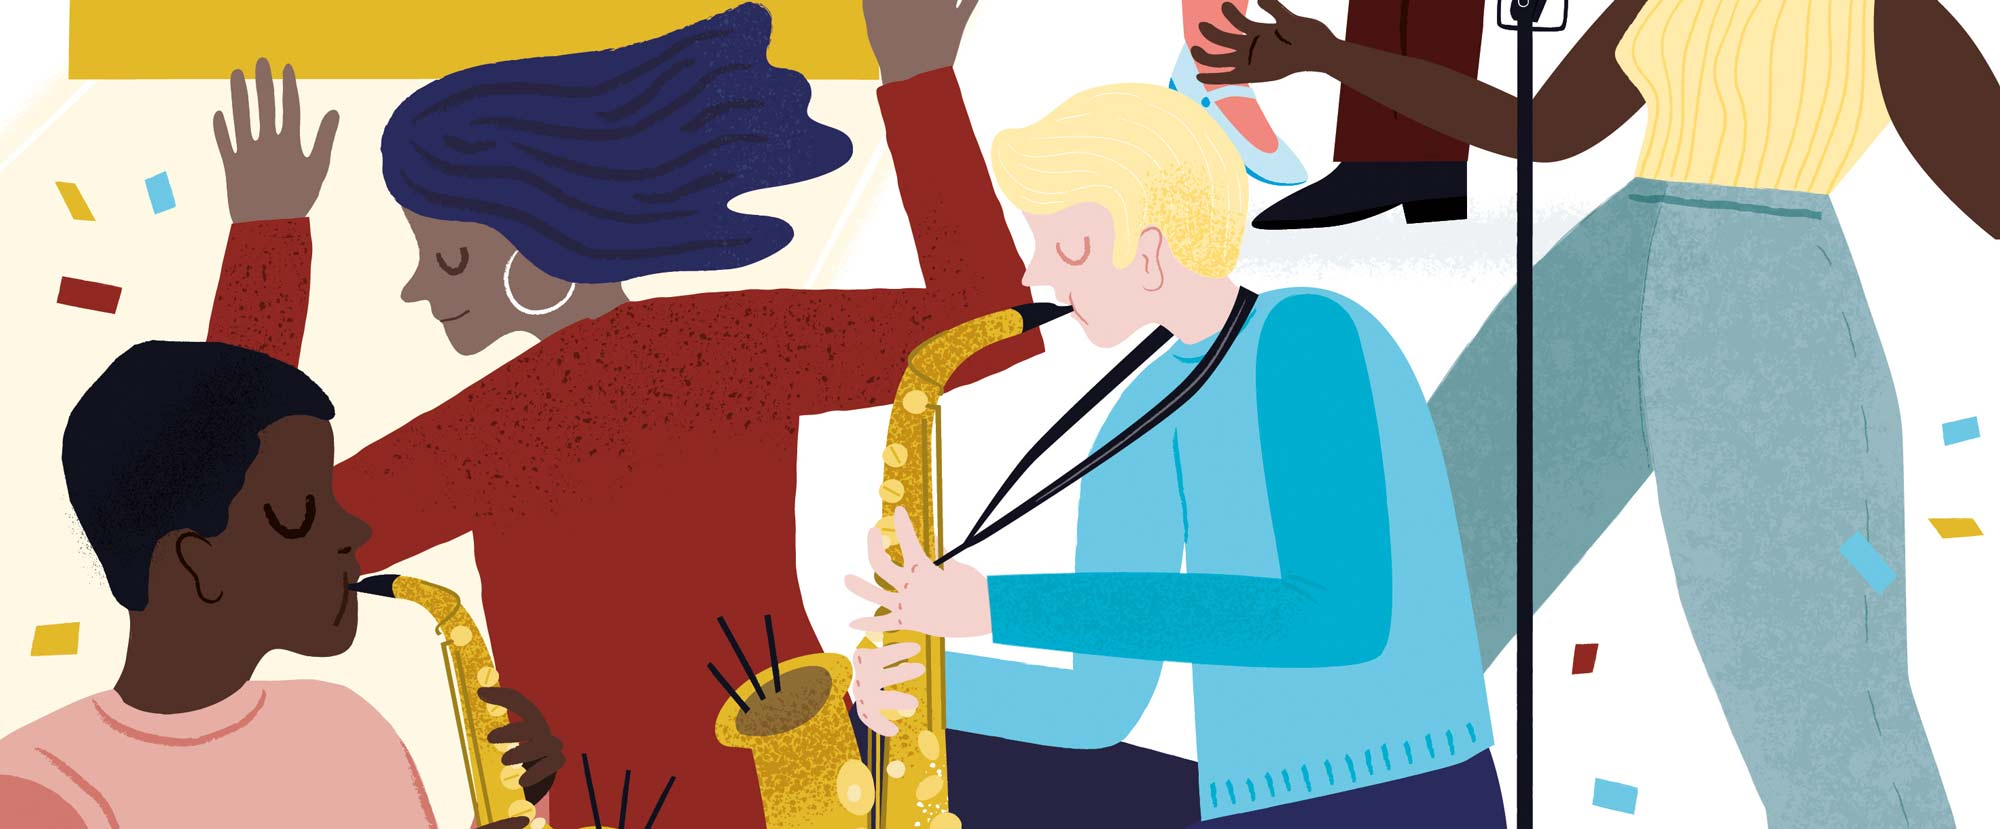 From a poster for Ronnie Scott's Jazz Club by Elly Jahnz